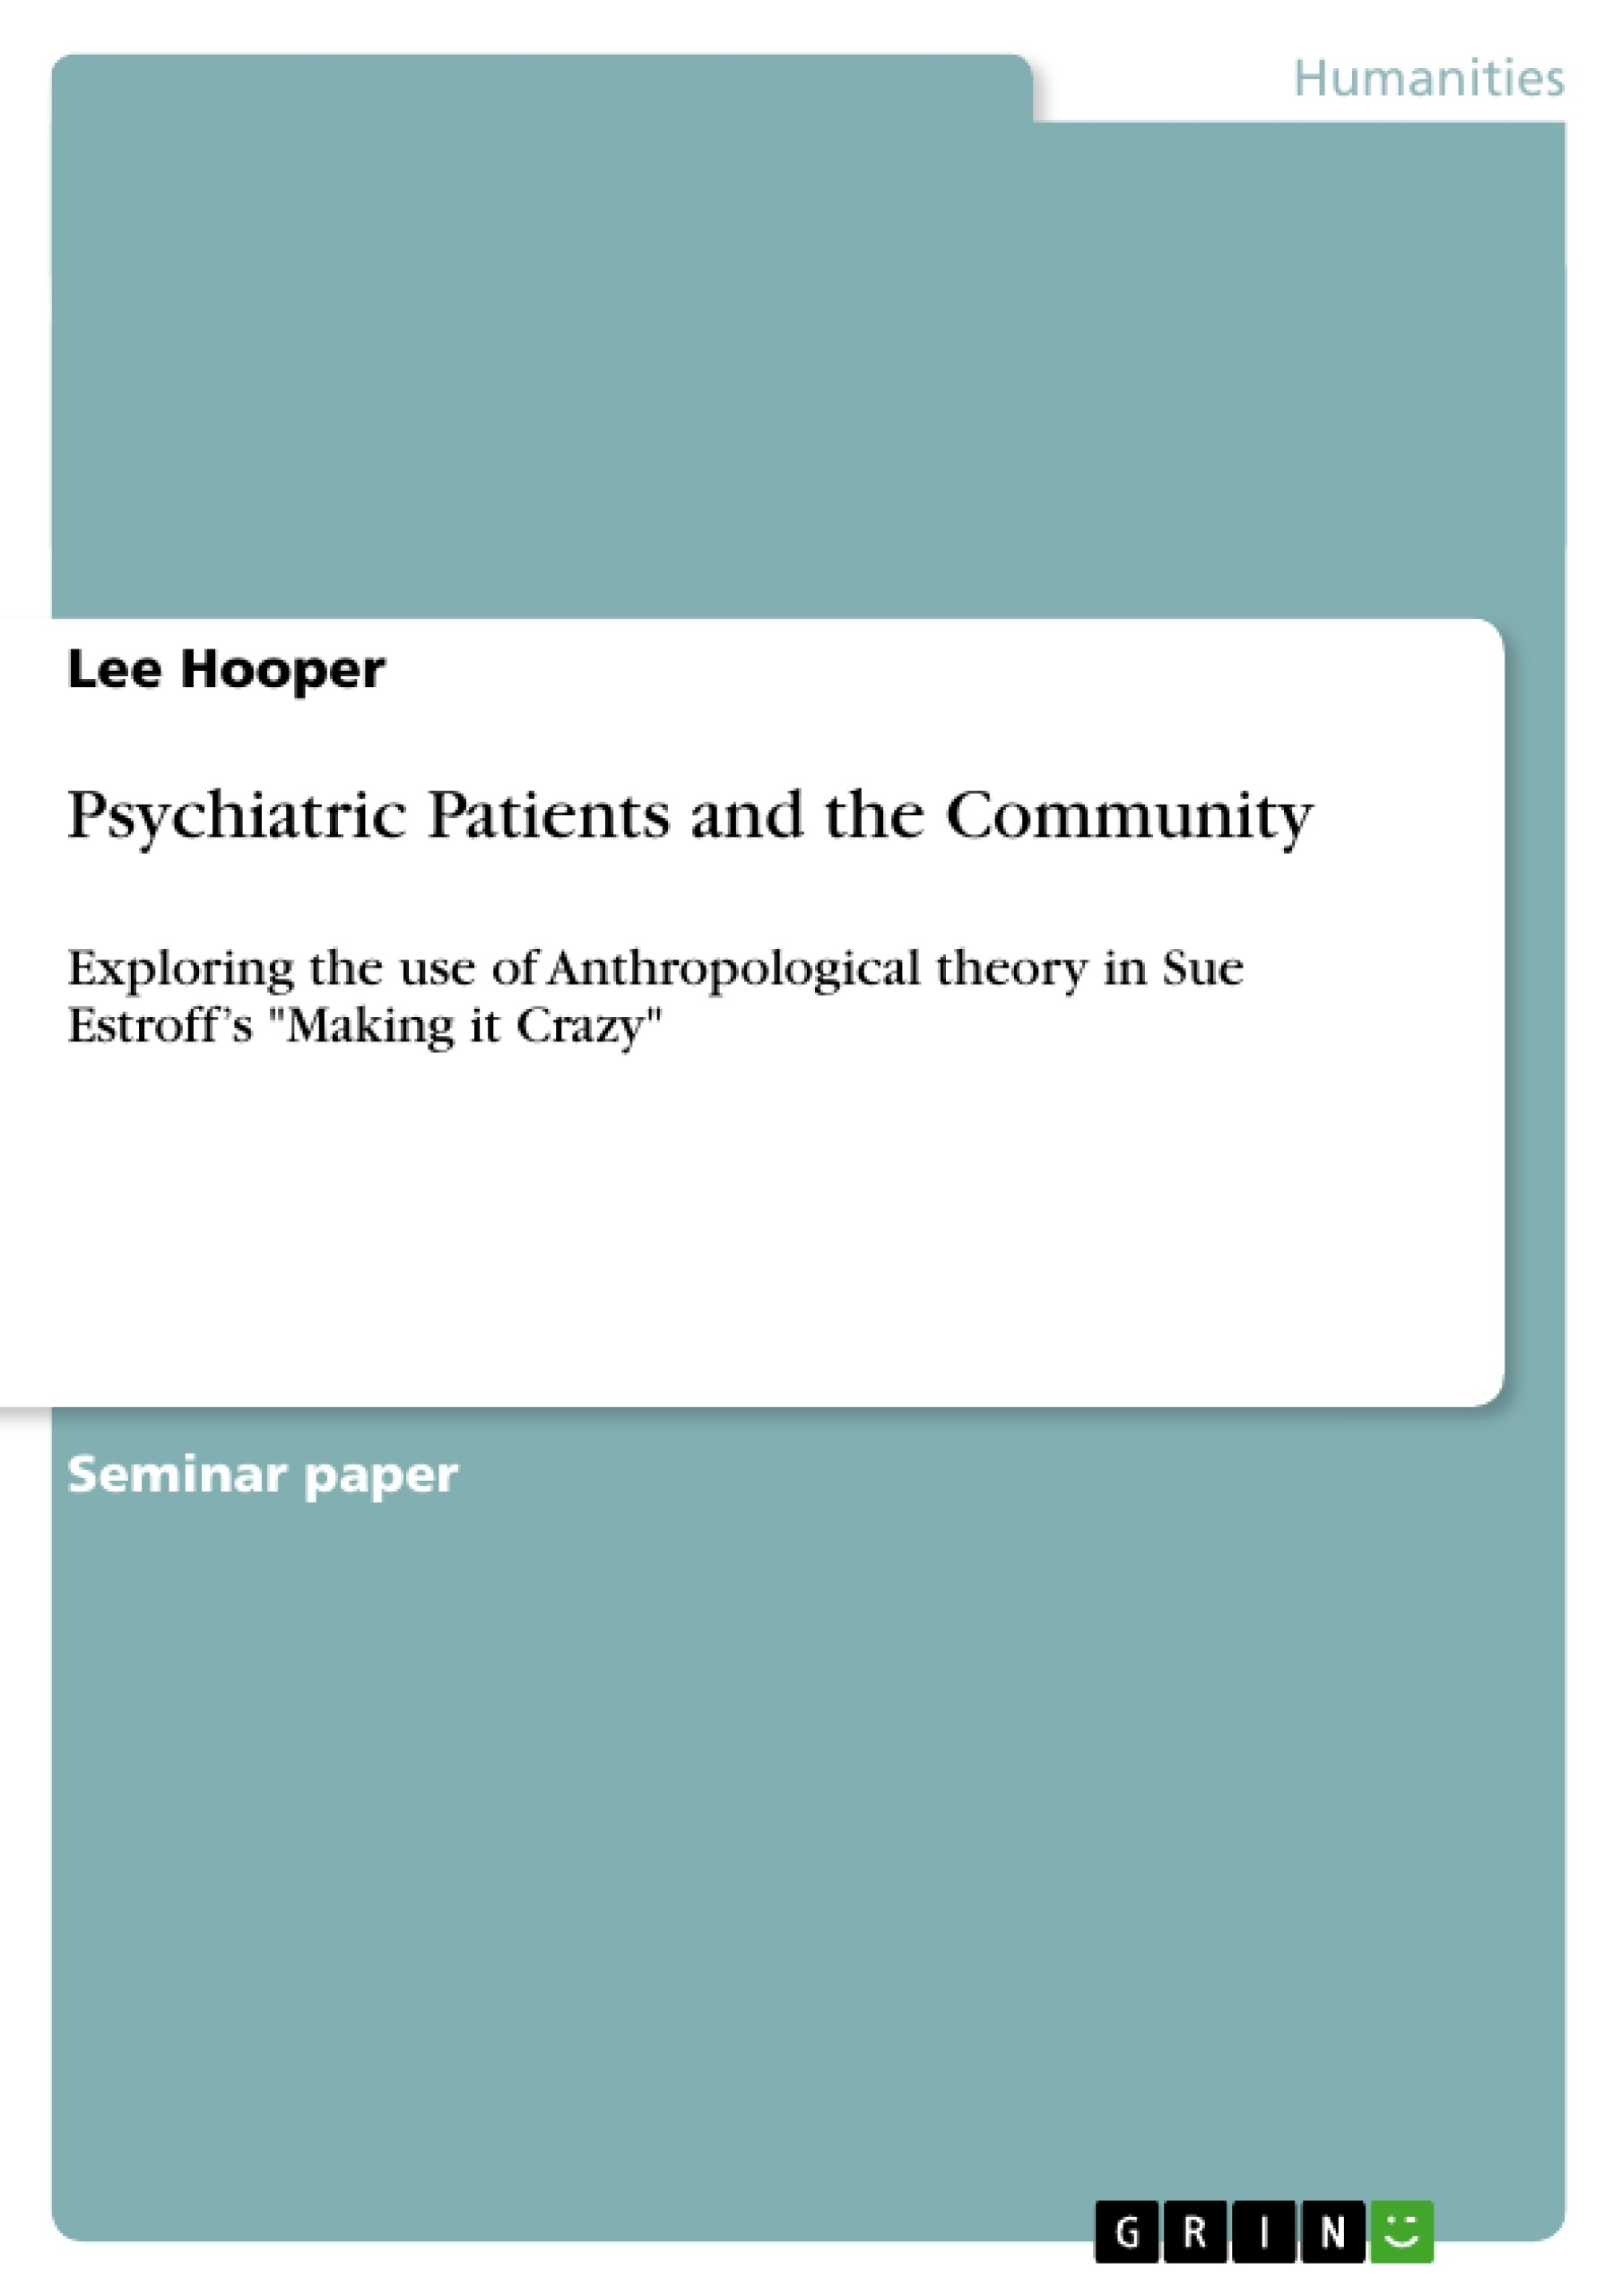 Title: Psychiatric Patients and the Community